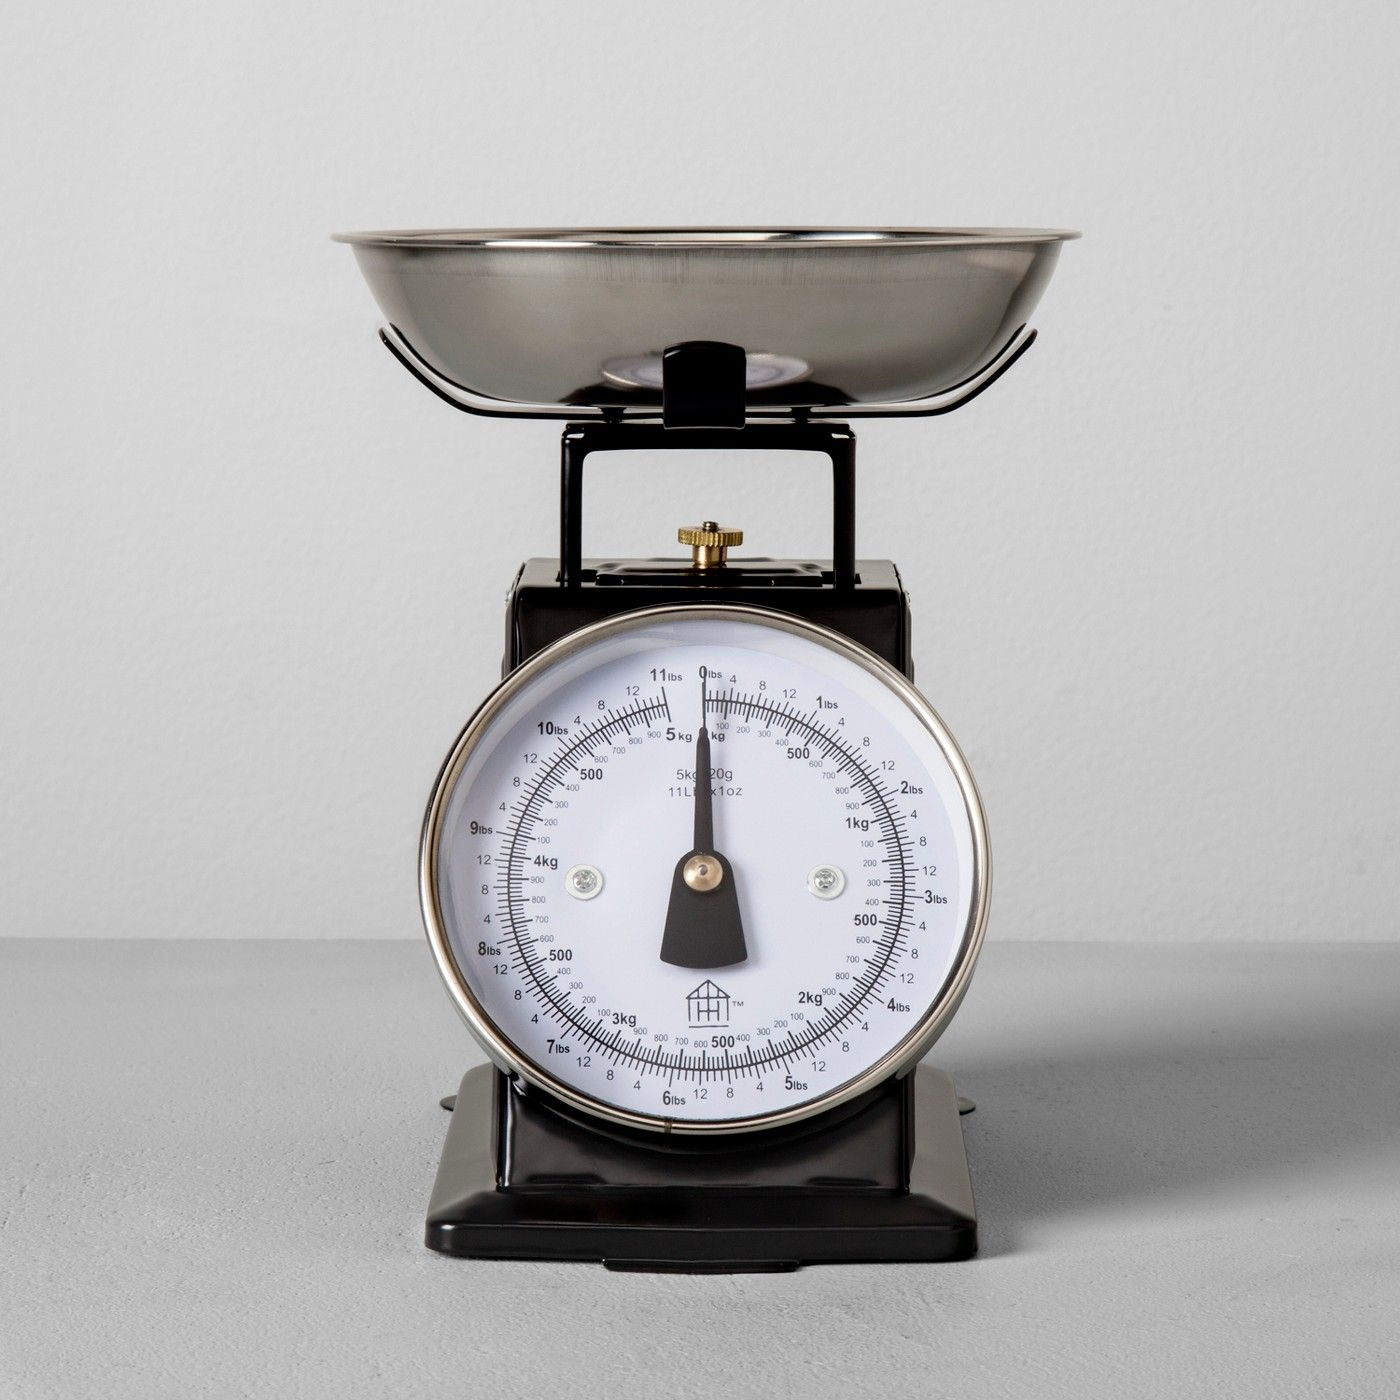 Food scale black hearth hand with magnolia image